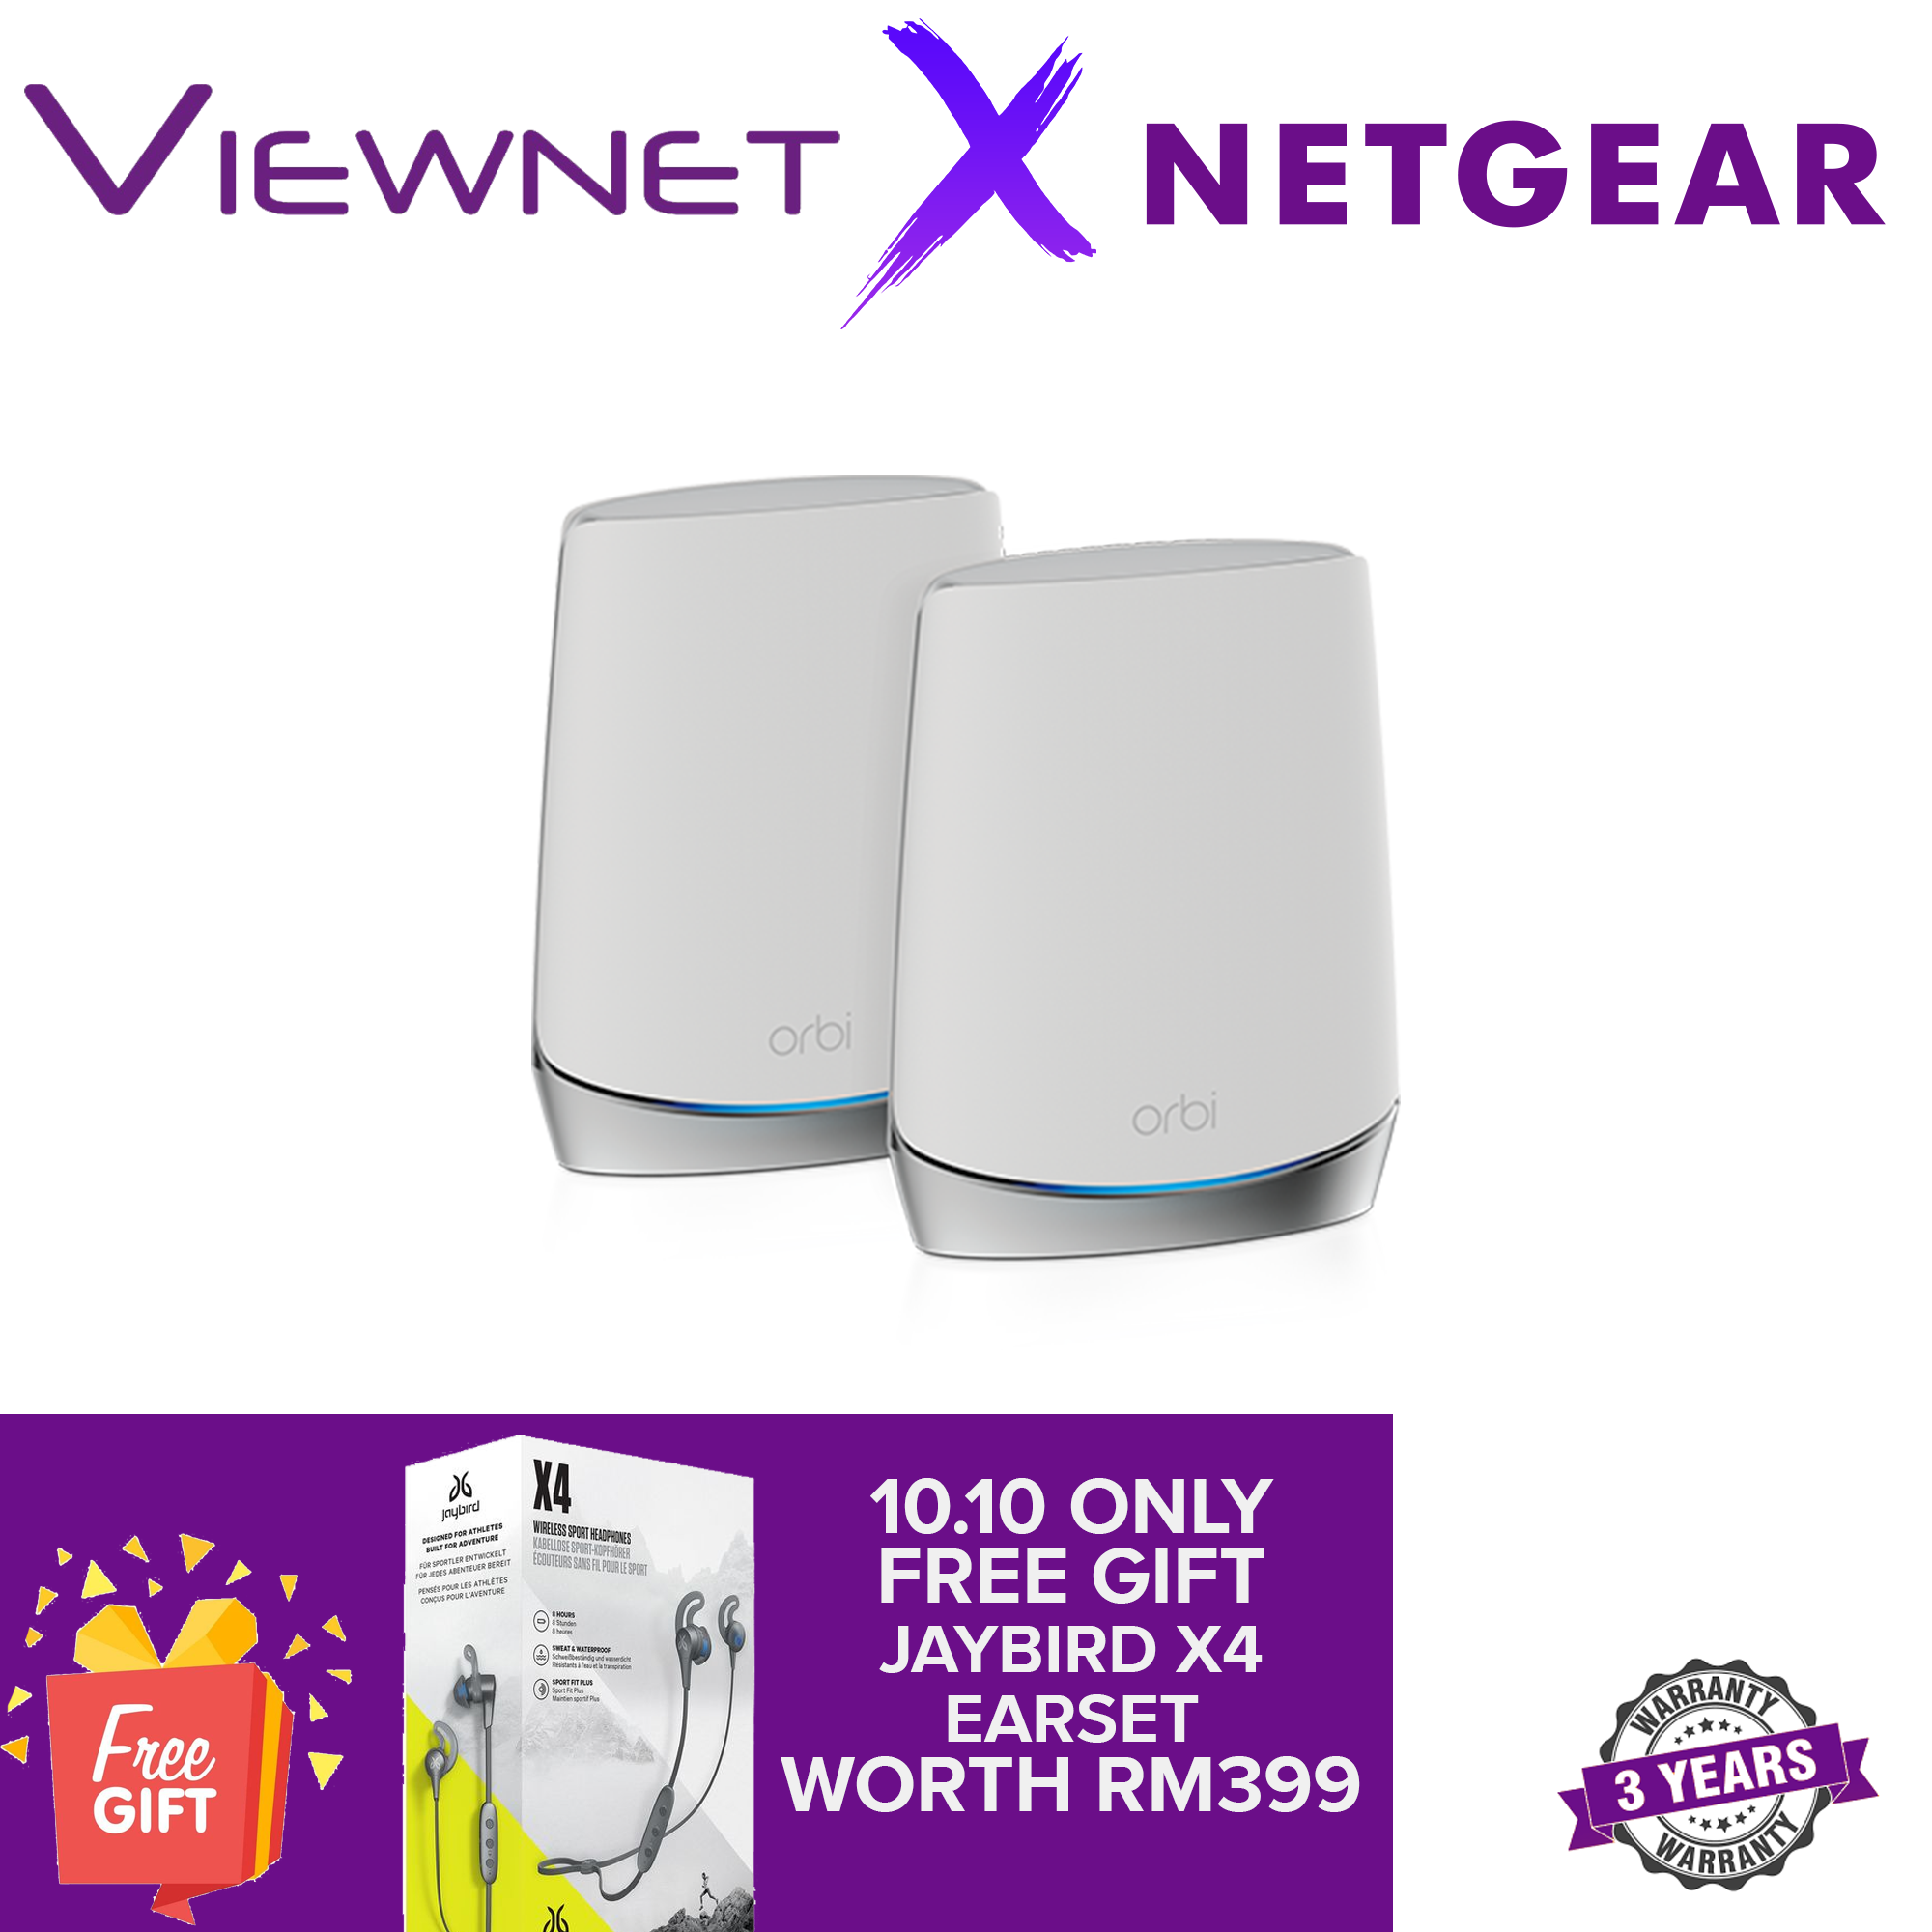 NETGEAR Orbi Whole Home Tri-Band Mesh WiFi 6 System (RBK752) – Router with 1 Satellite Extender Coverage up to 5,000 sq. ft. and 40+ Devices Mesh AX4200 WiFi 6 (Up to 4.2Gbps)